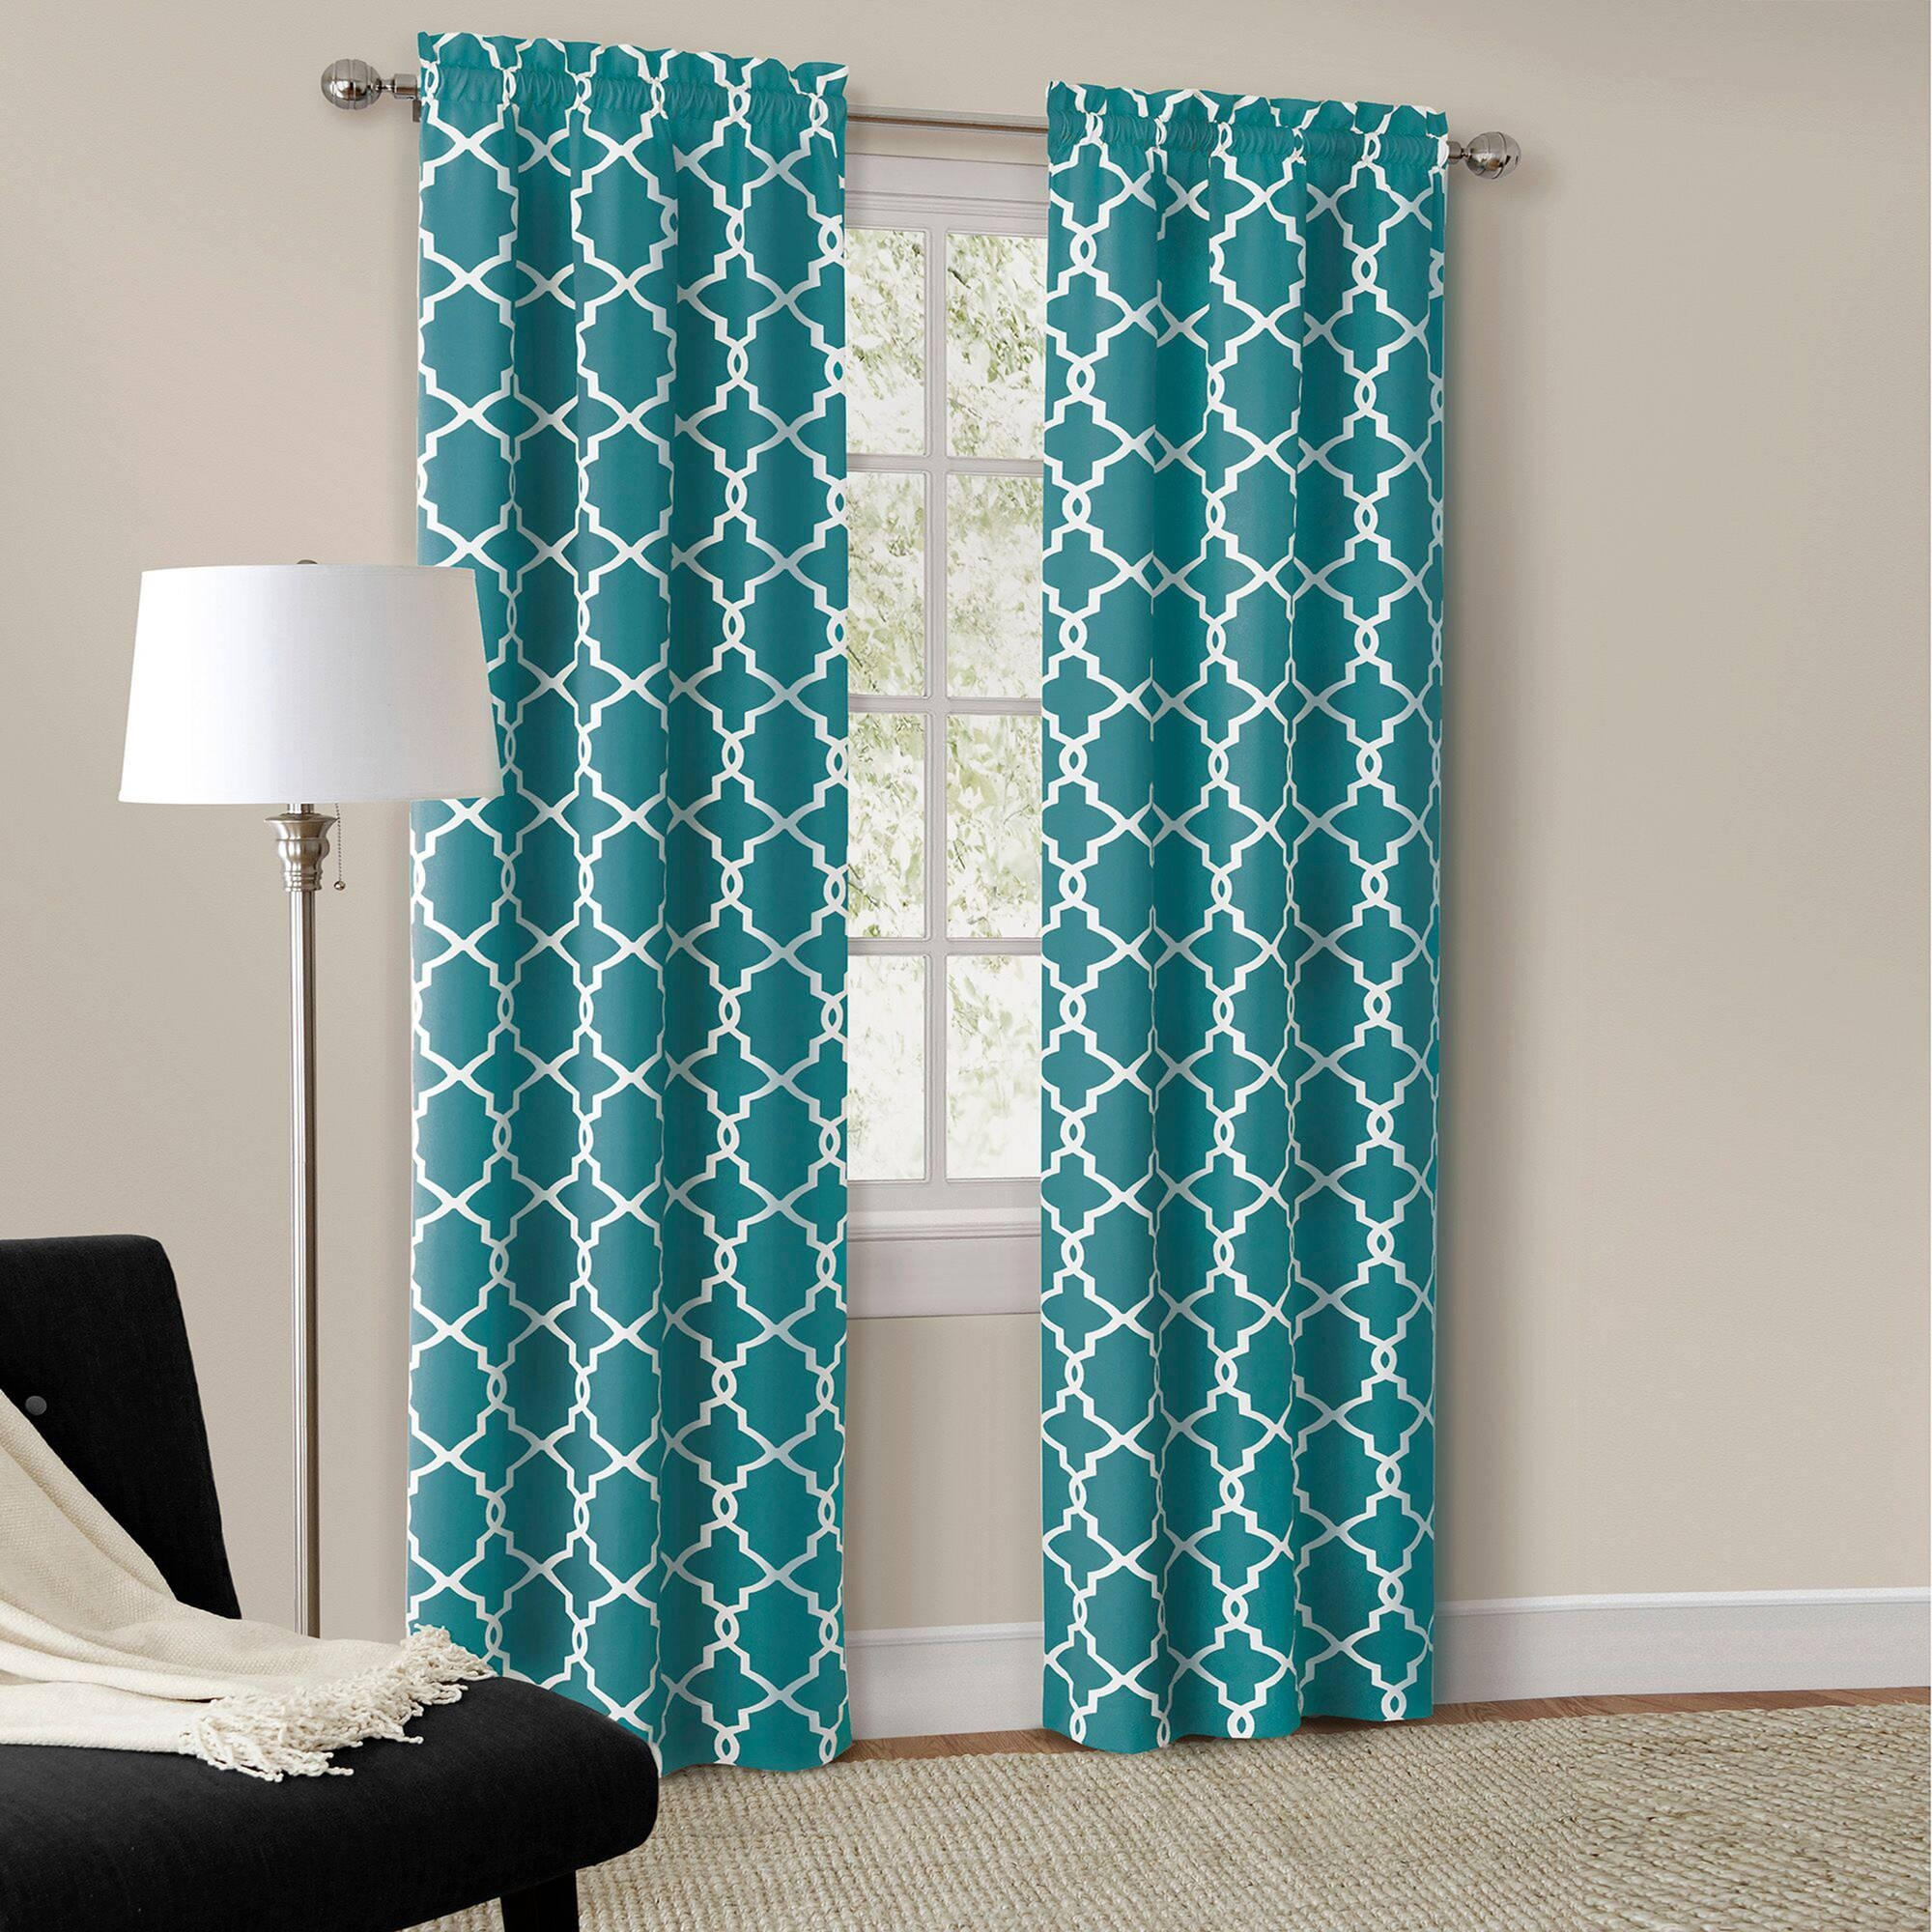 Window Blackout Drapes Walmart Curtains And 72 Inch With Turquoise Trellis Image 20